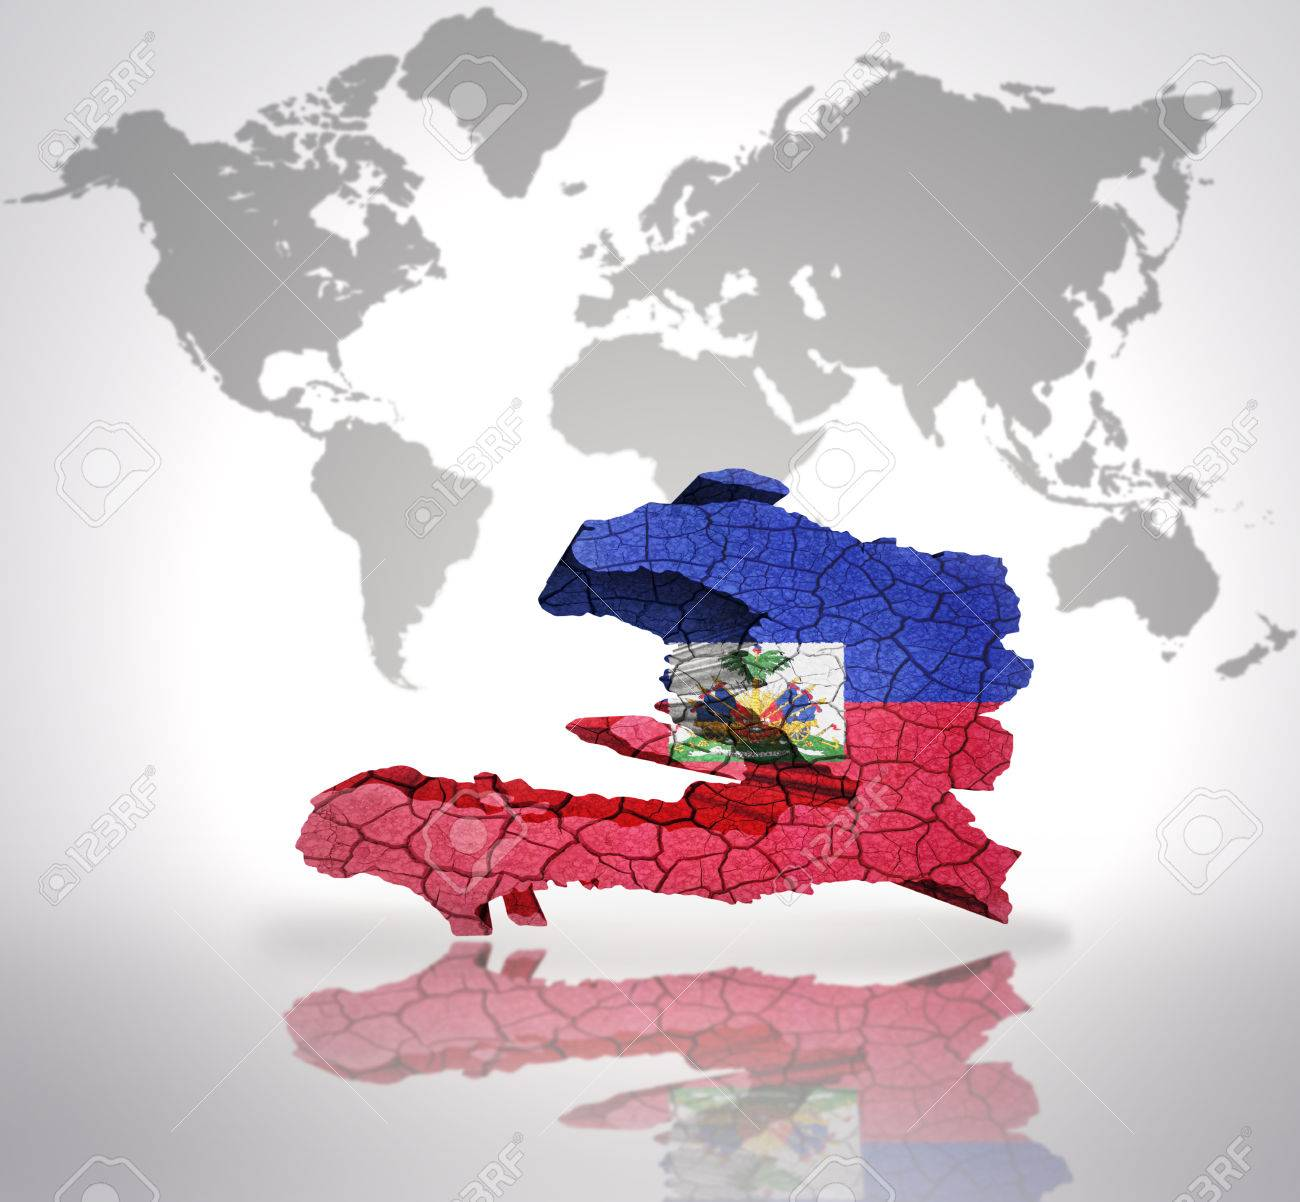 Map of haiti with haiti flag on a world map background stock photo map of haiti with haiti flag on a world map background stock photo 32762946 gumiabroncs